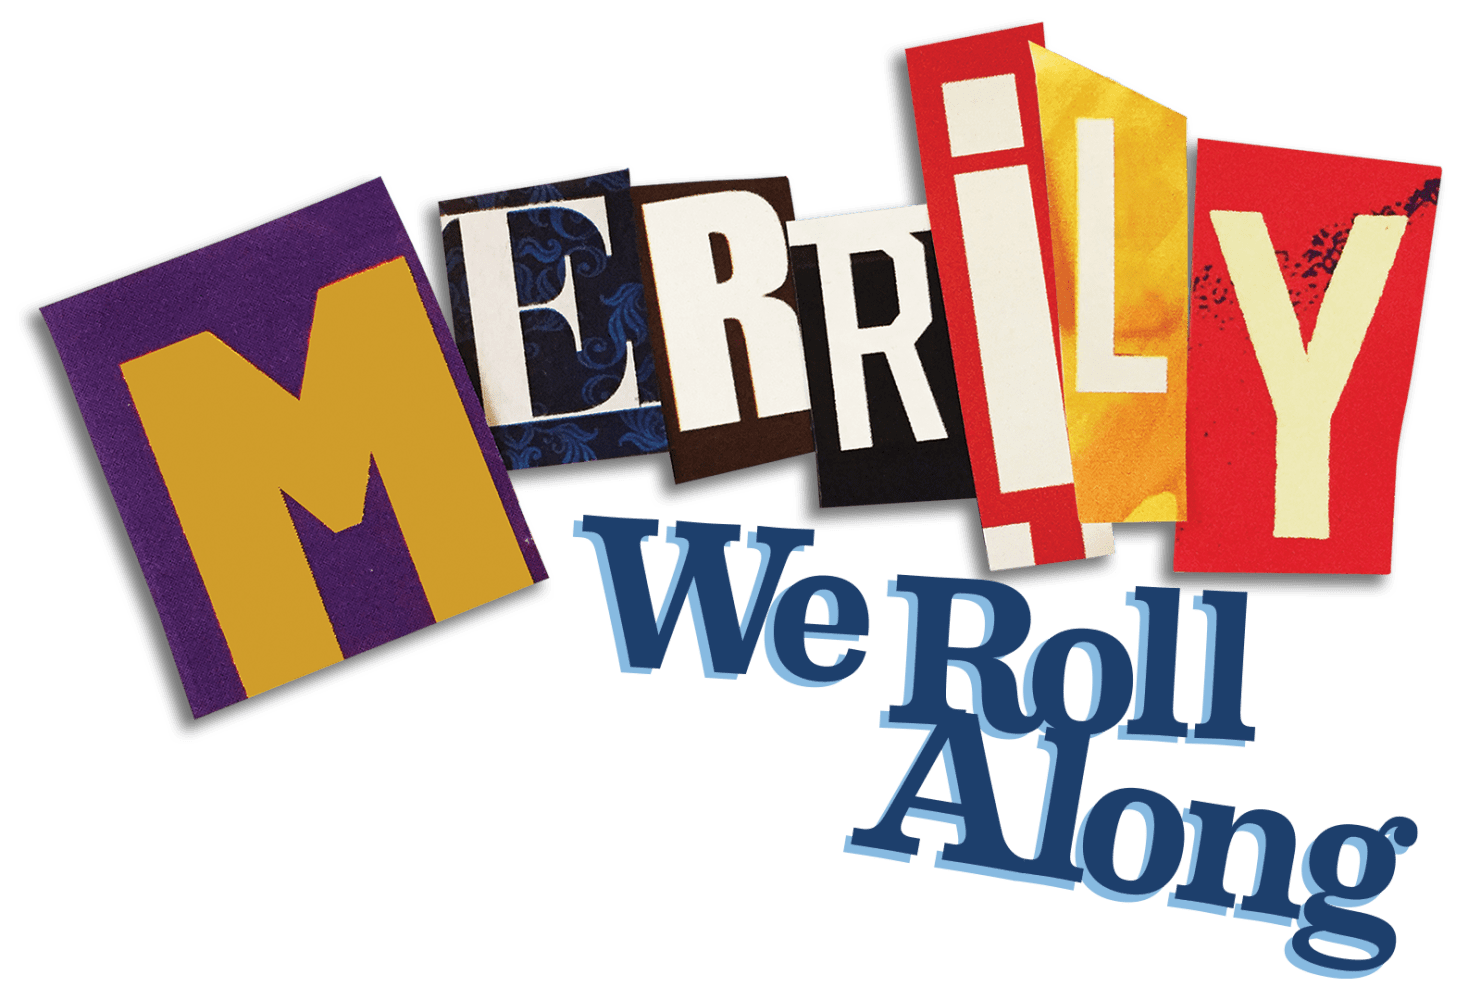 Artwork for Merrily We Roll Along